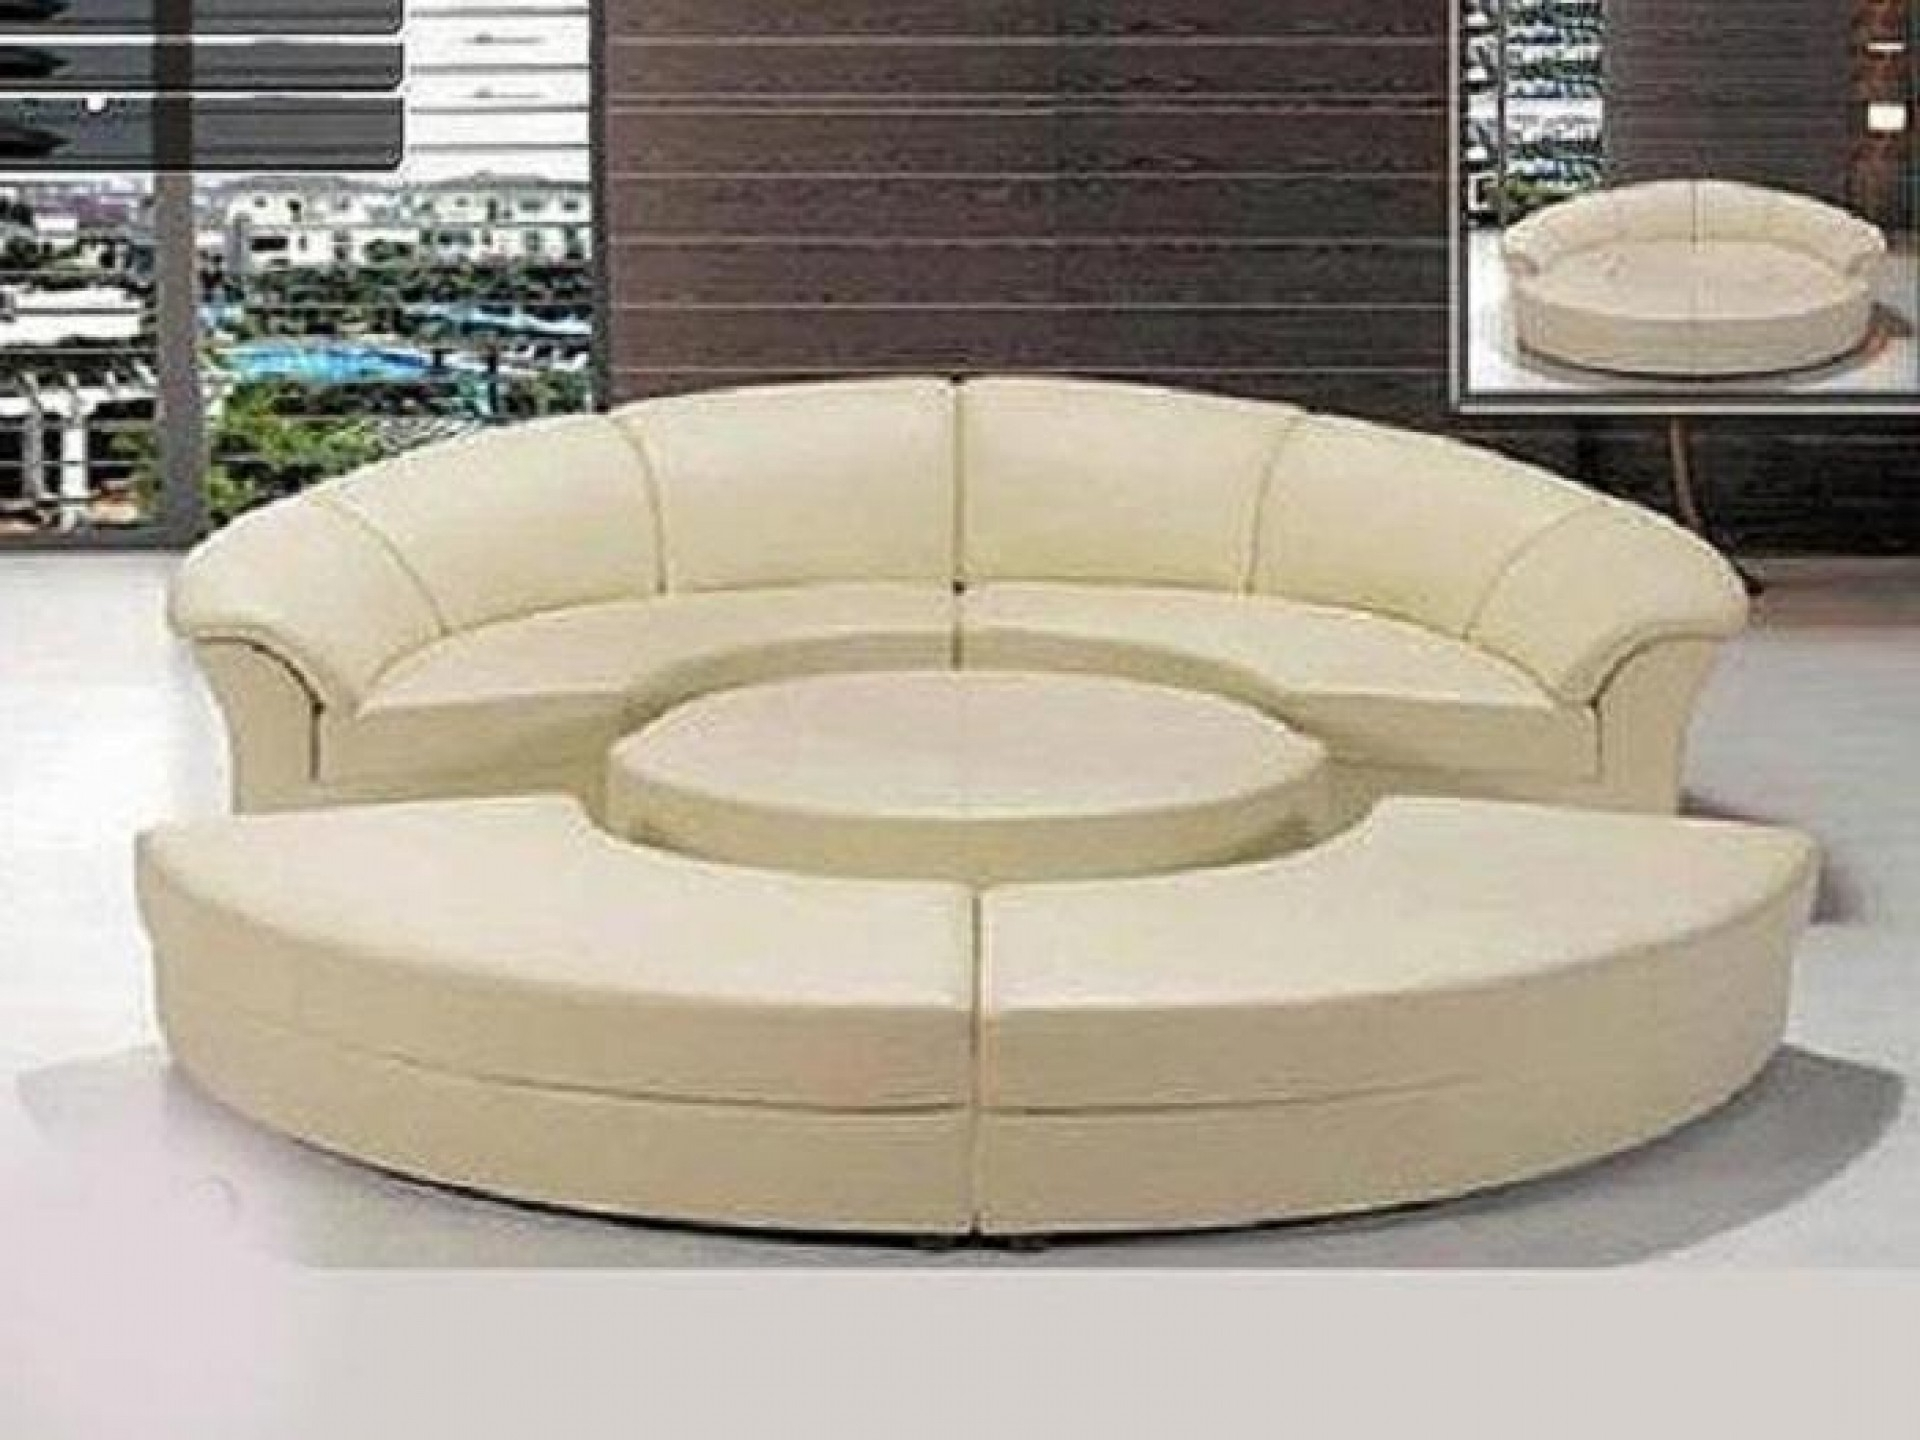 Affordable Tufted Sofas Intended For Preferred Cool Cheap Sofas For Sale For Your Sofa Glamorous Round Sectional (View 4 of 20)